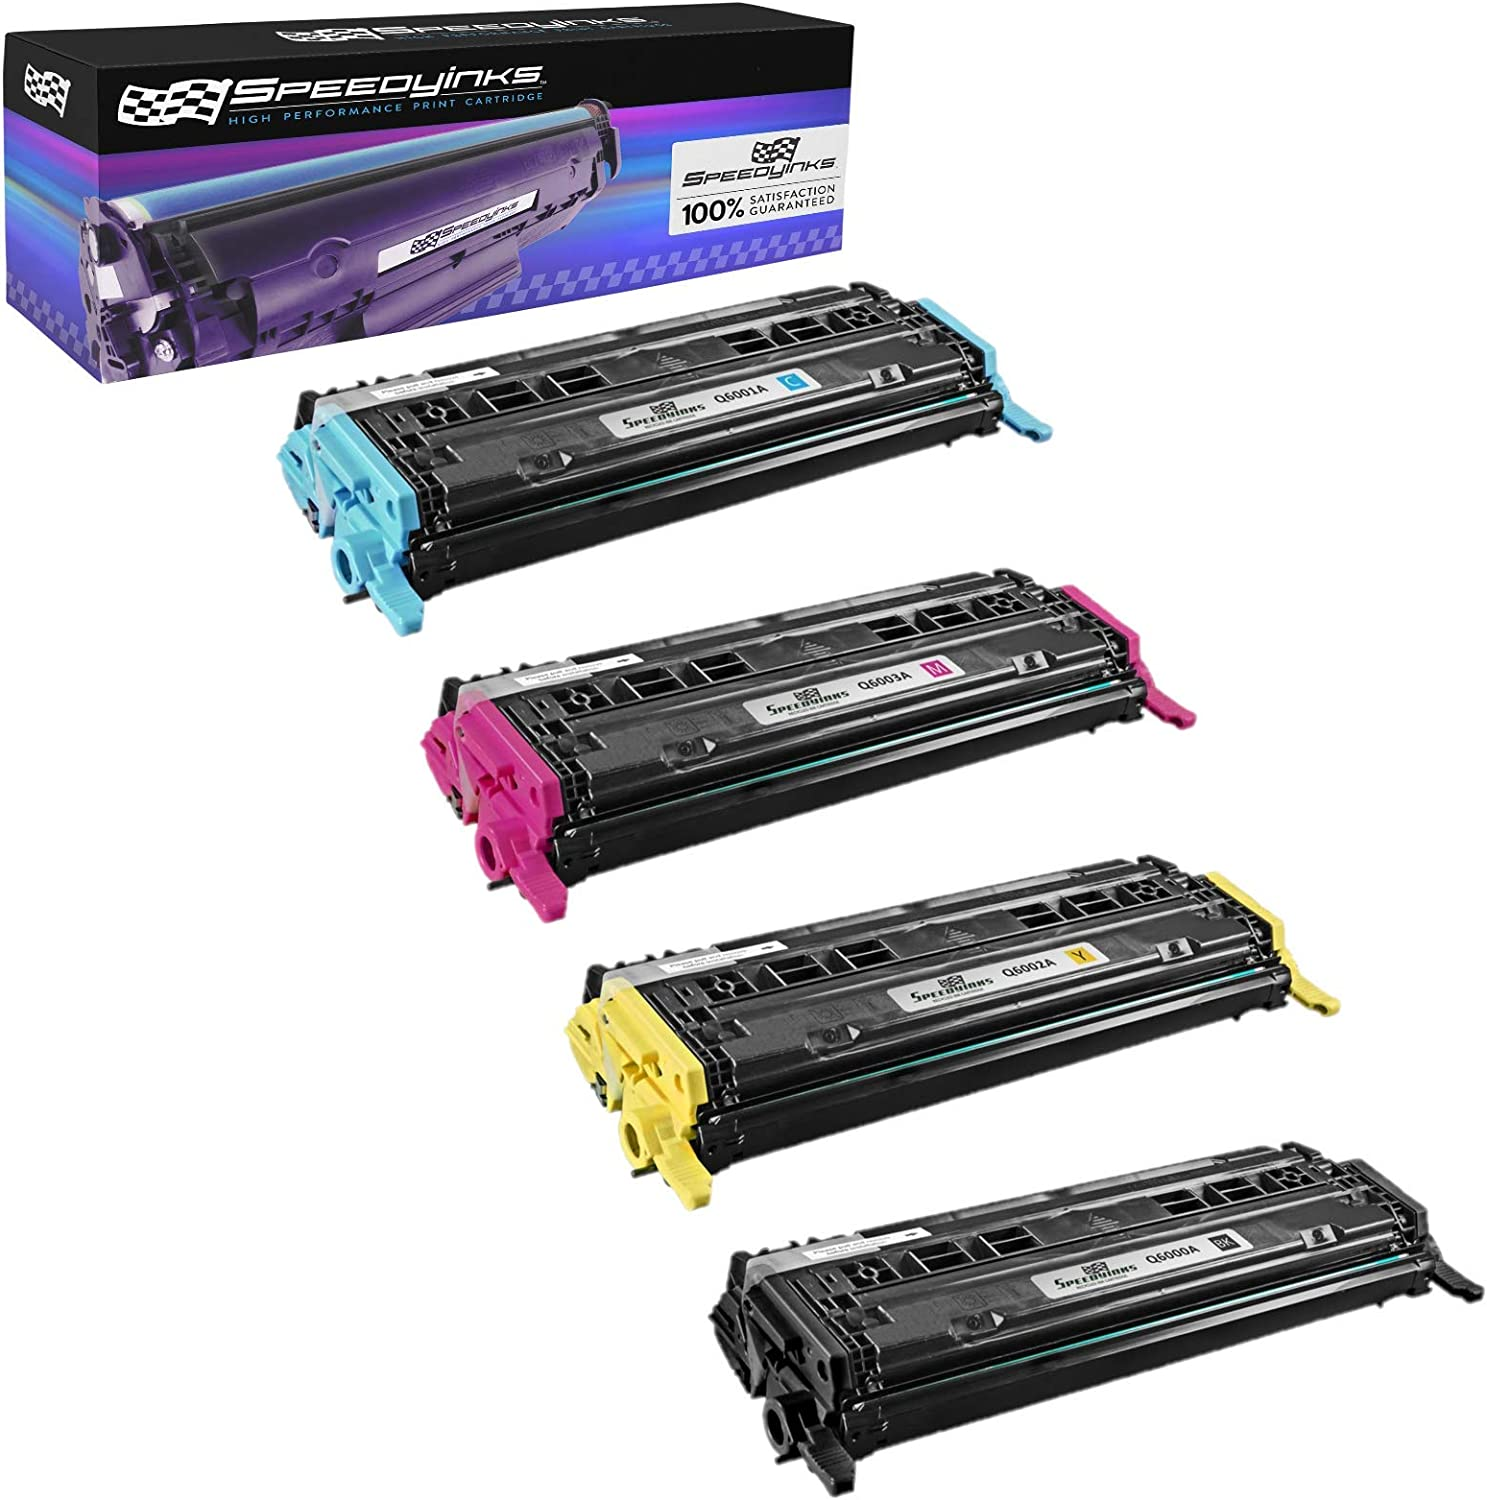 Speedy Inks Remanufactured Toner Cartridge Replacement for HP 124A (1 Black, 1 Cyan, 1 Magenta, 1 Yellow, 4-Pack)